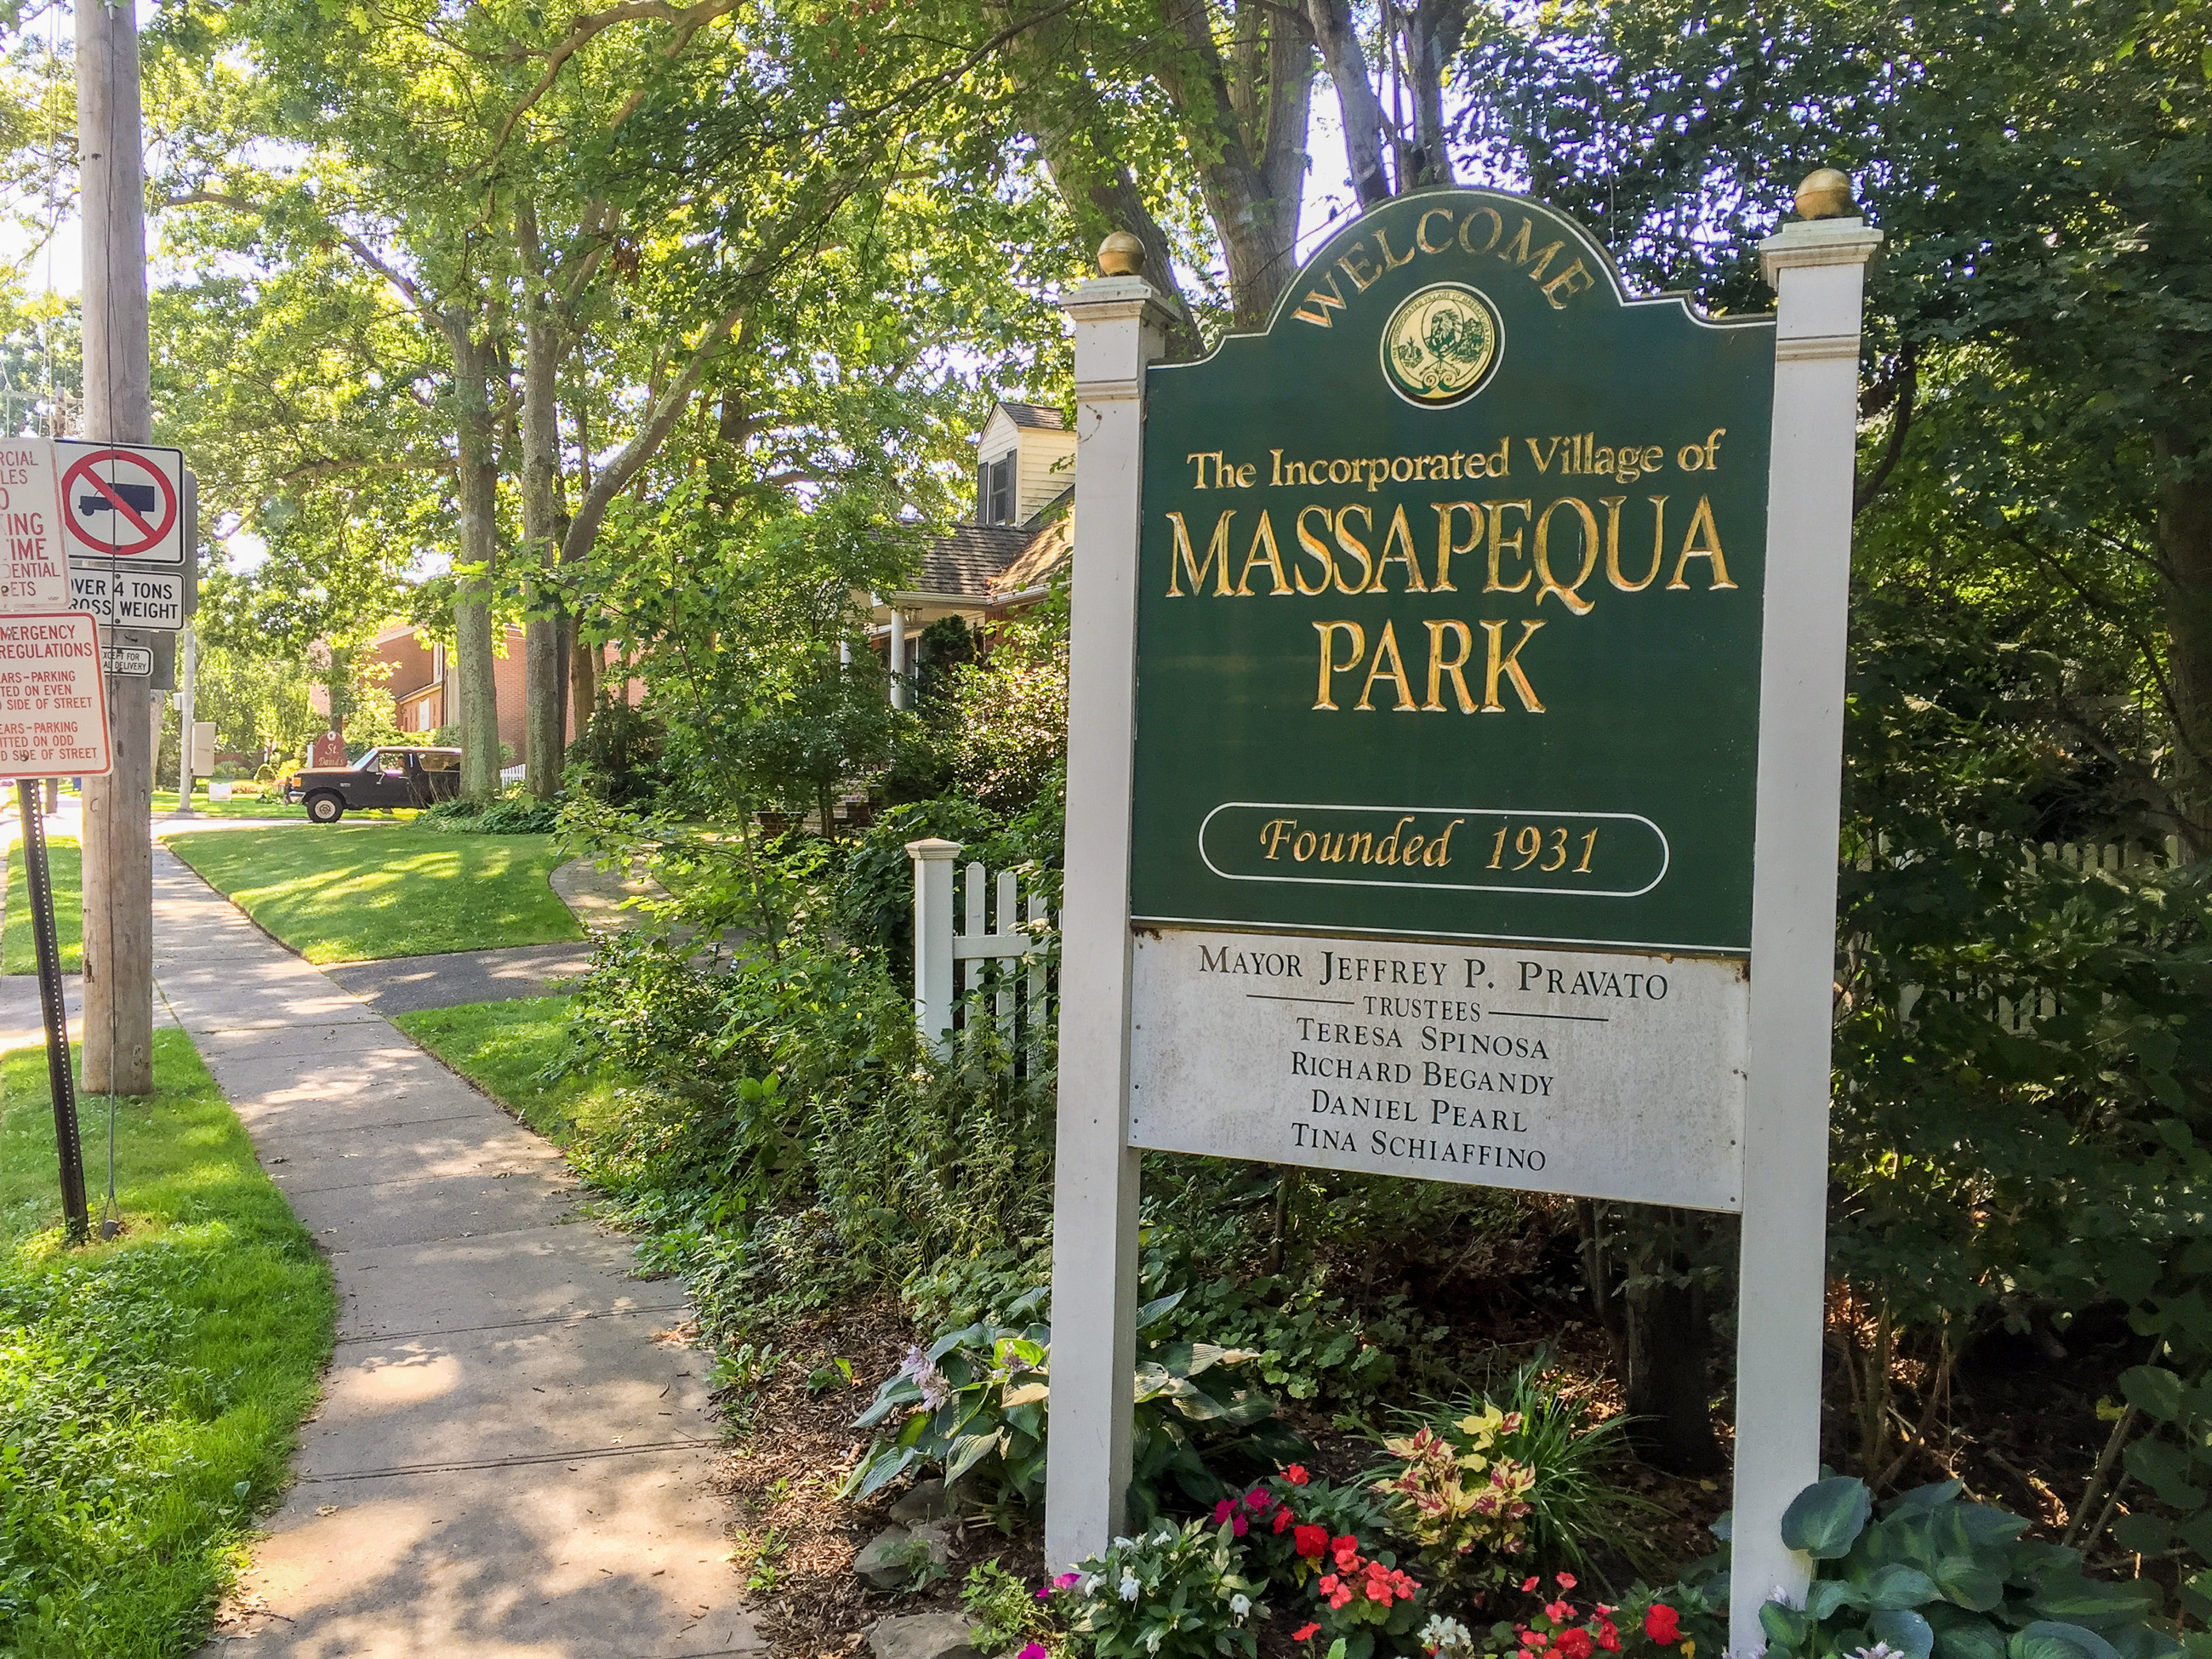 massapequa park singles Massapequa park apartments: search for apartments and houses for rent near massapequa park, ny view listings for currently available properties.